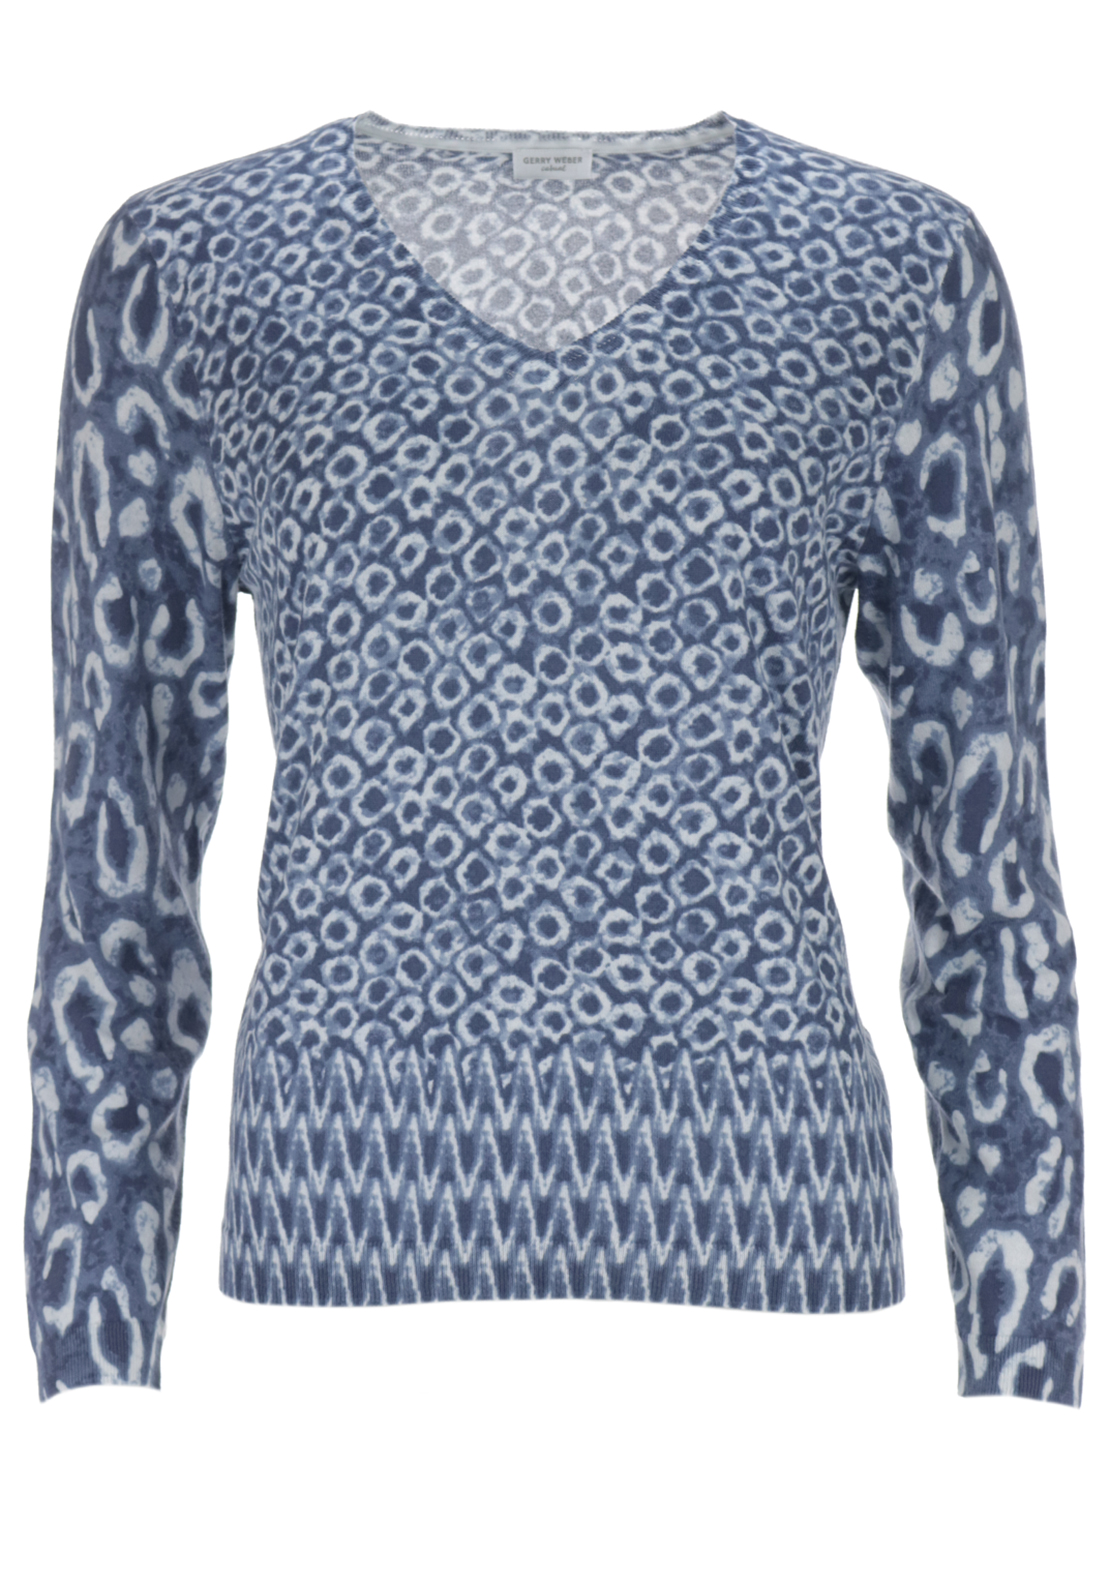 Gerry Weber Animal Printed Fine Knit Jumper,